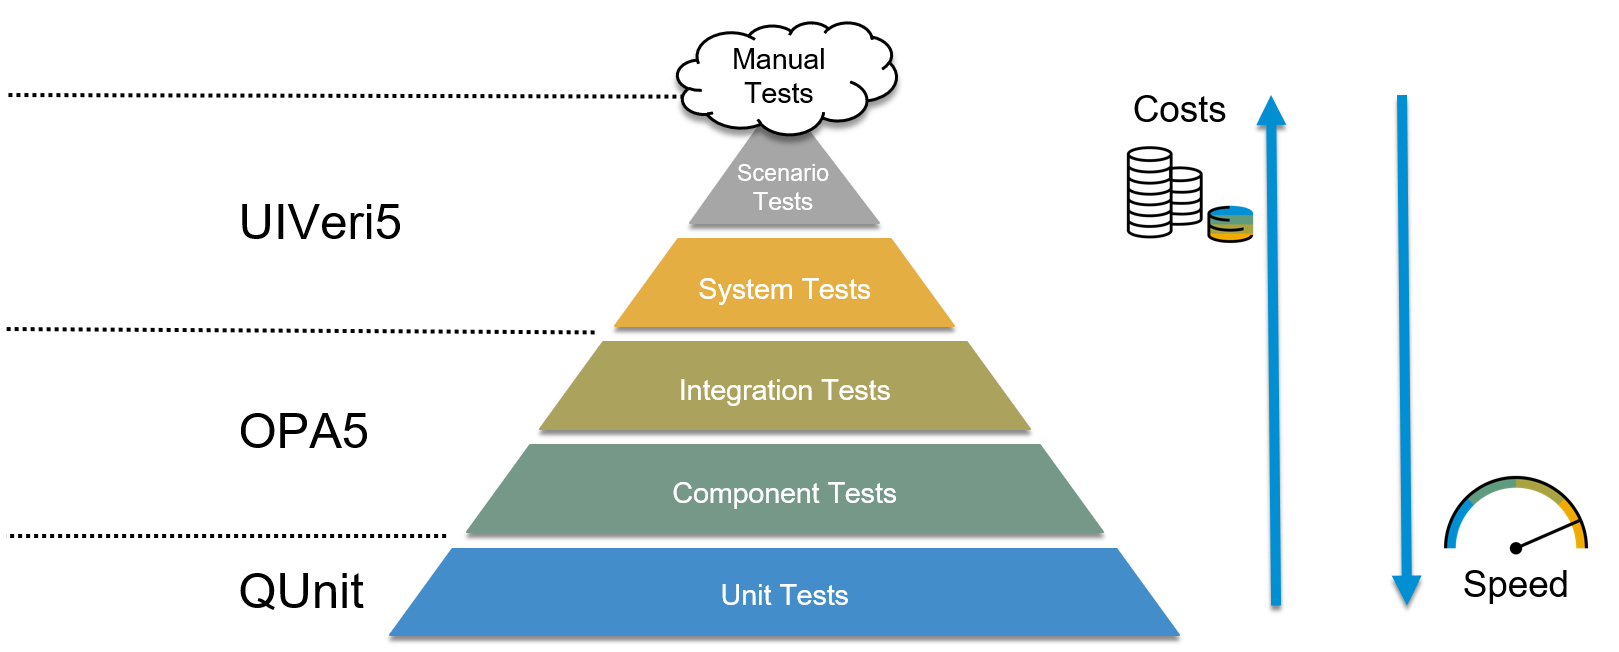 UIVeri5: More Stable System Tests for UI5 Applications | SAP